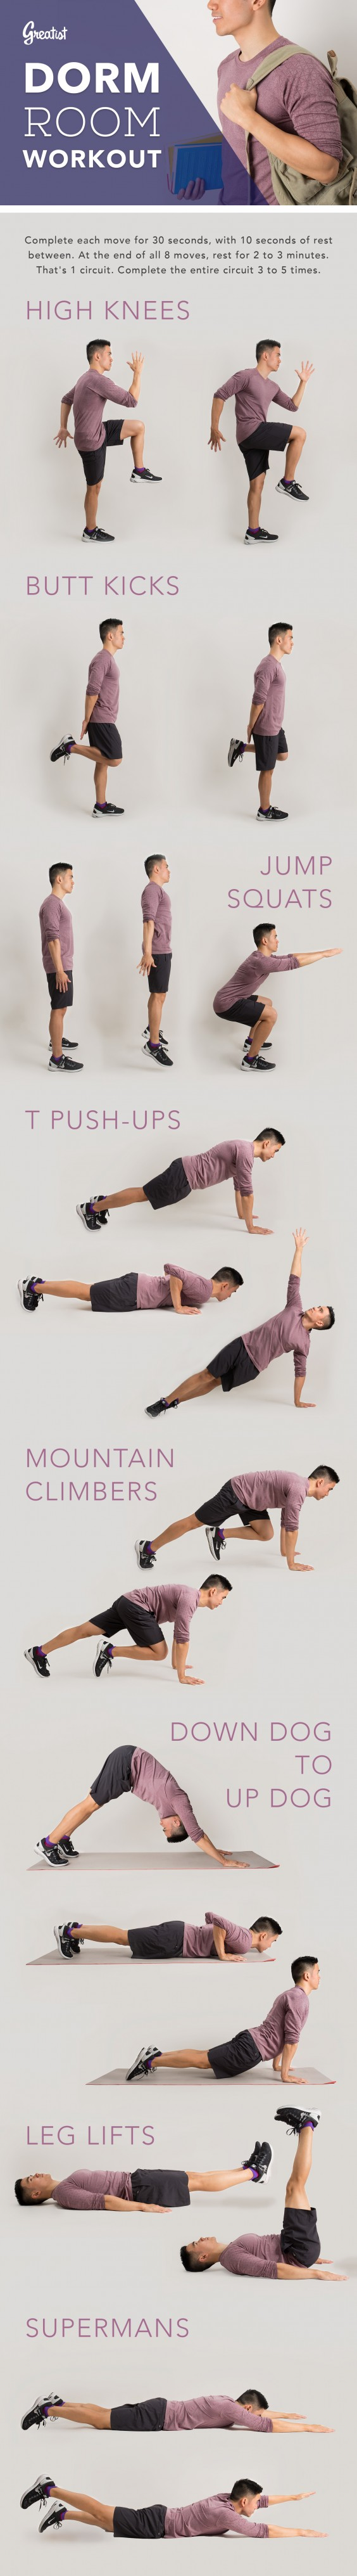 8 Bodyweight Exercises To Try In Your Dorm Room Nice Look